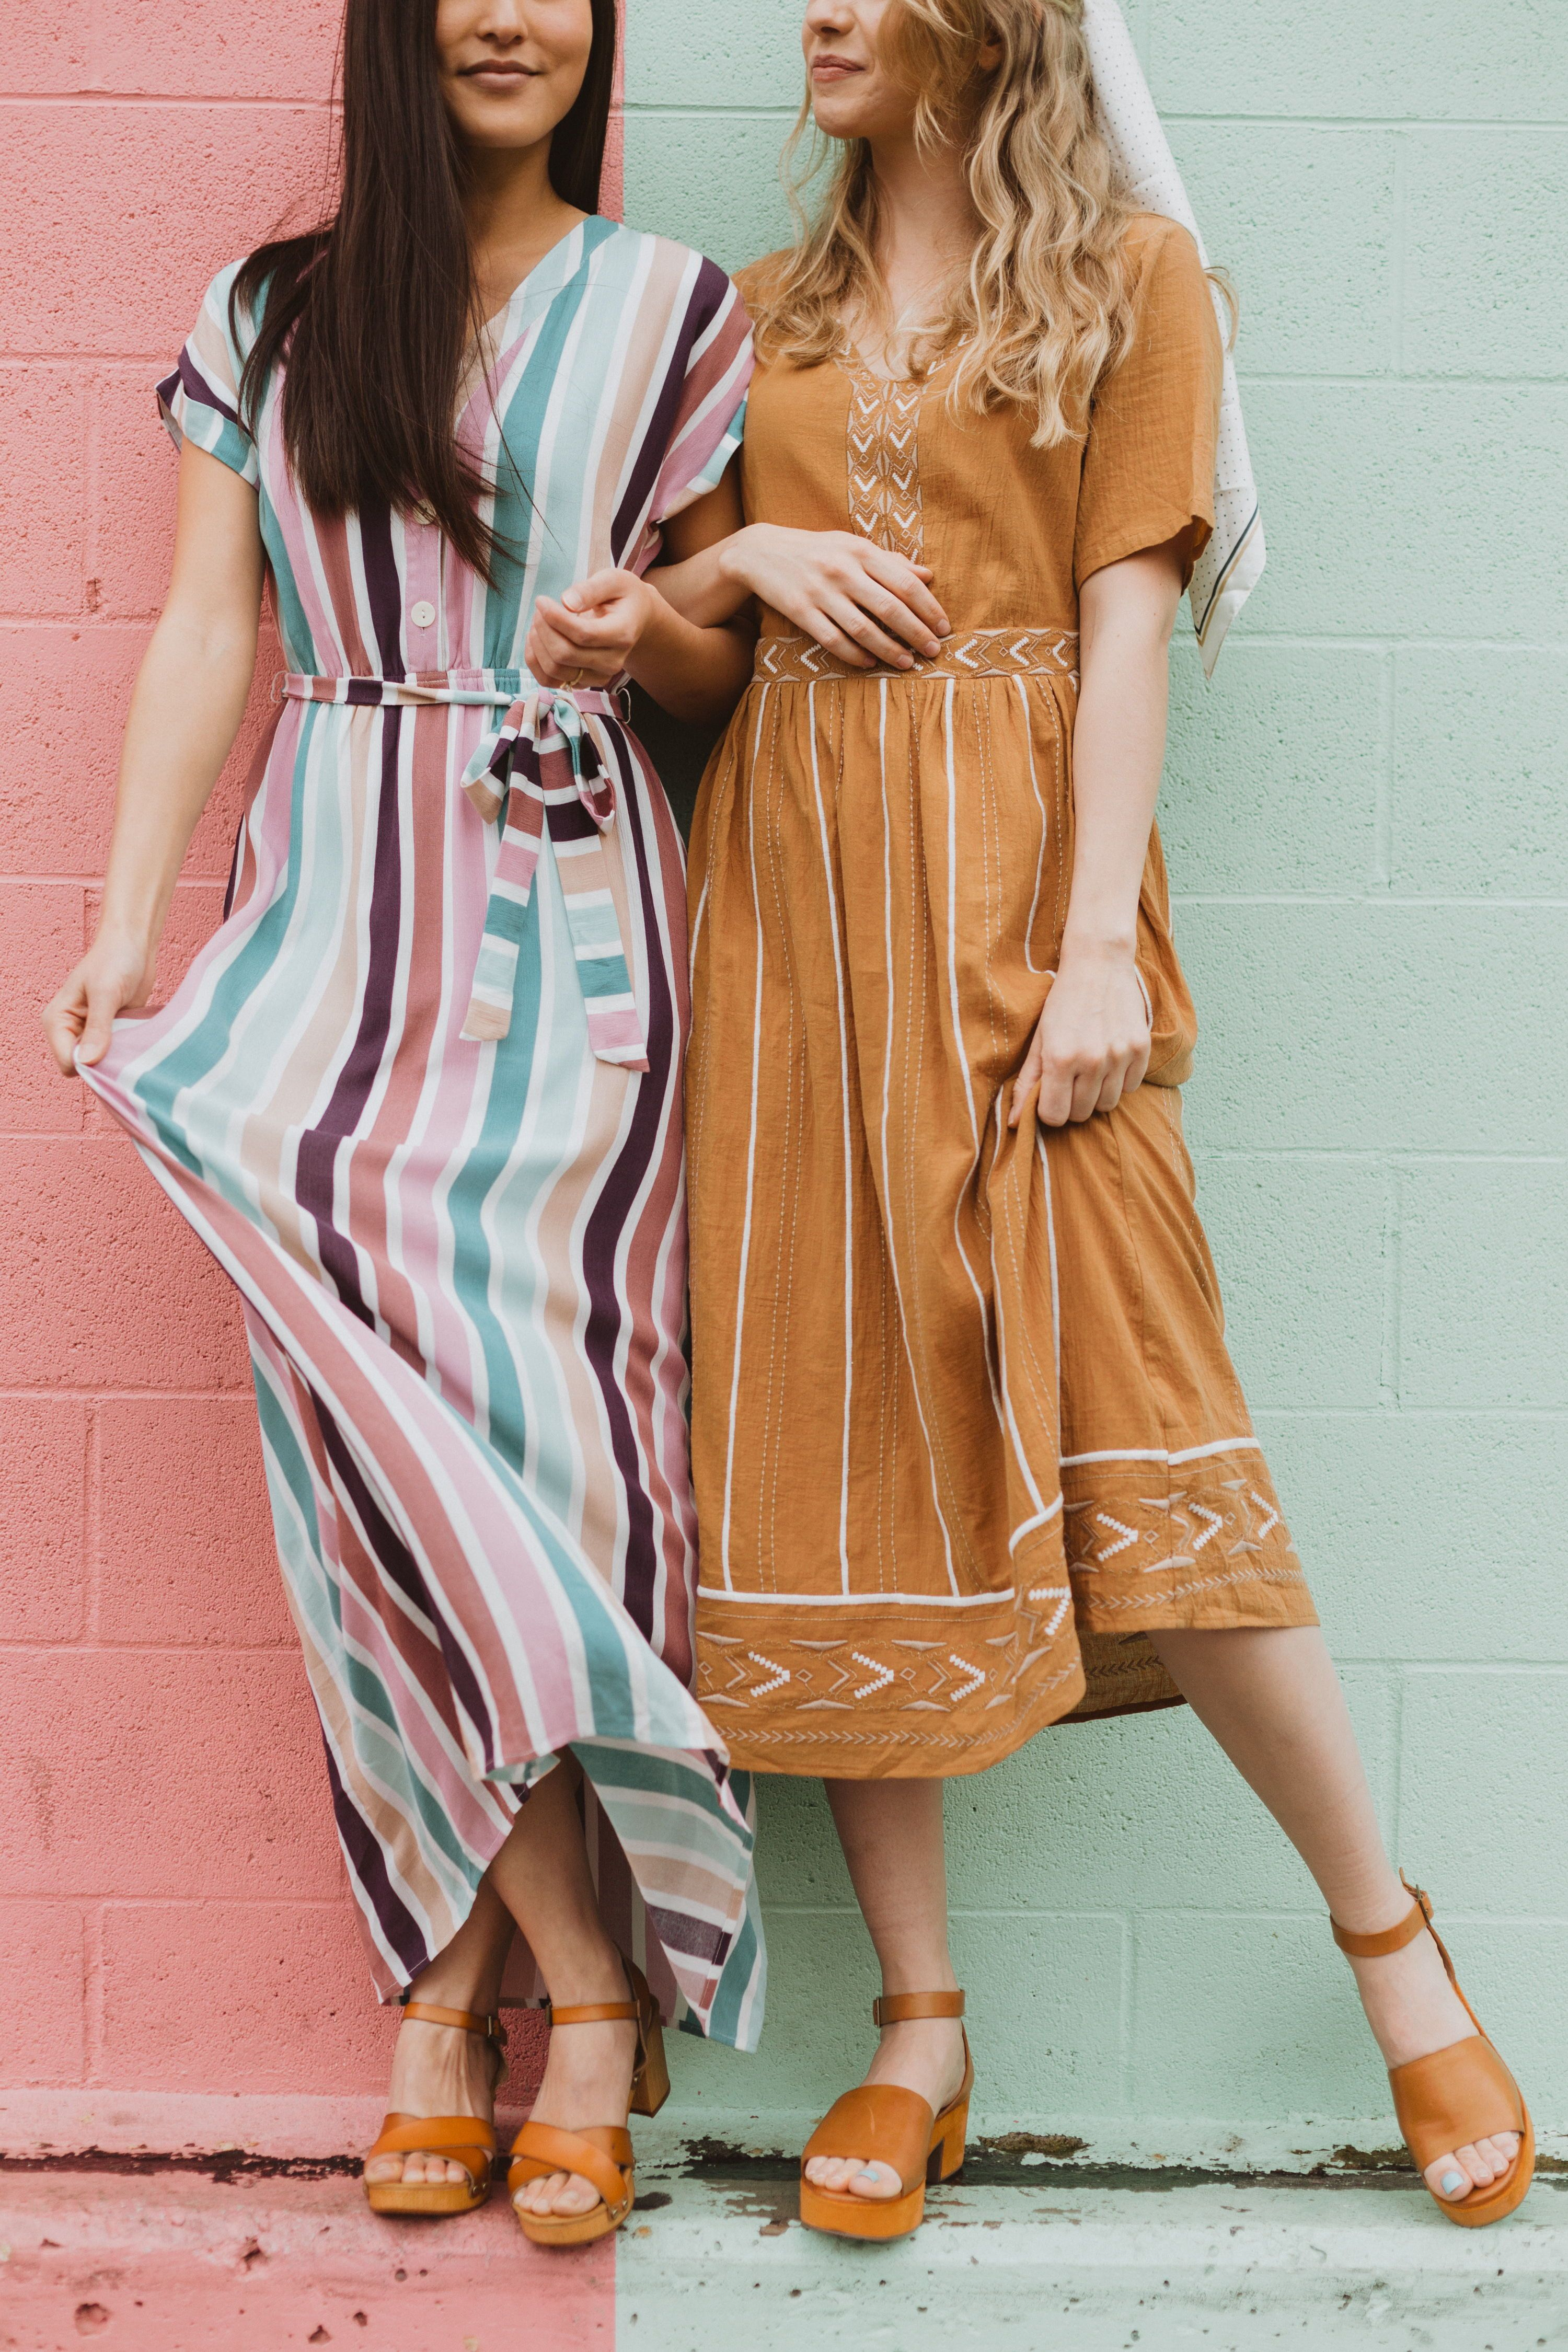 The Cha Cha Striped Maxi Dress Is As If All Your Favorite Things Came Together As A Dress It Is Nursing Frien Vertical Striped Dress Dresses Clothes For Women [ 4500 x 3000 Pixel ]